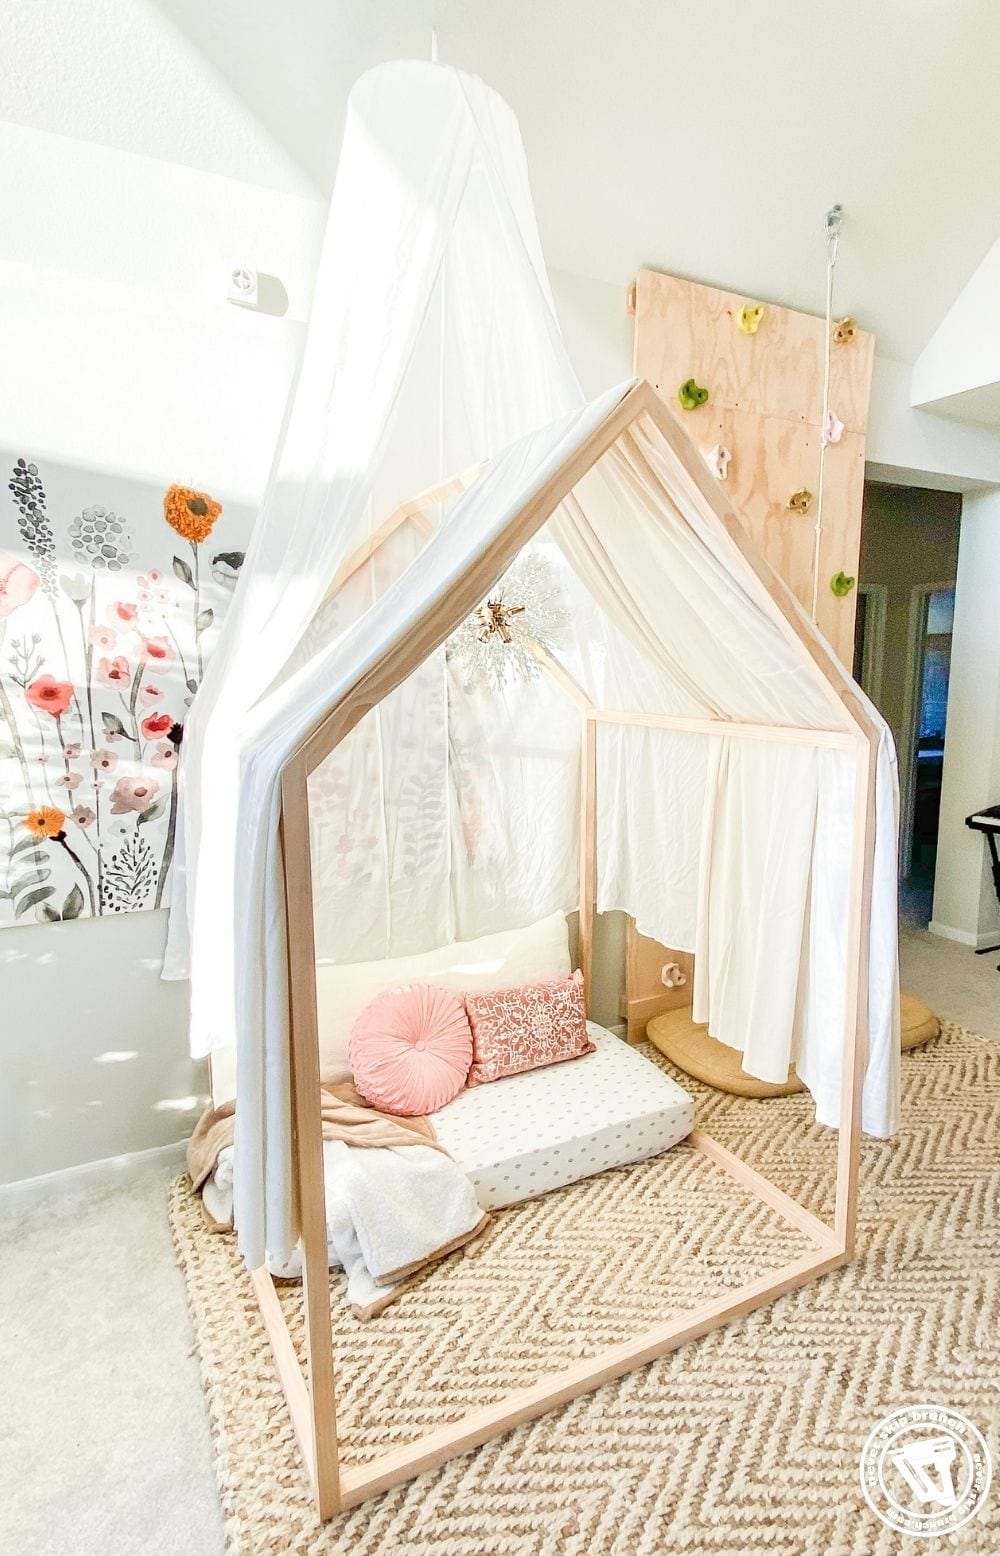 Diy Playhouse Playhouse Frame Reading Nook With Repurposed Crib Mattress Never Skip Brunch